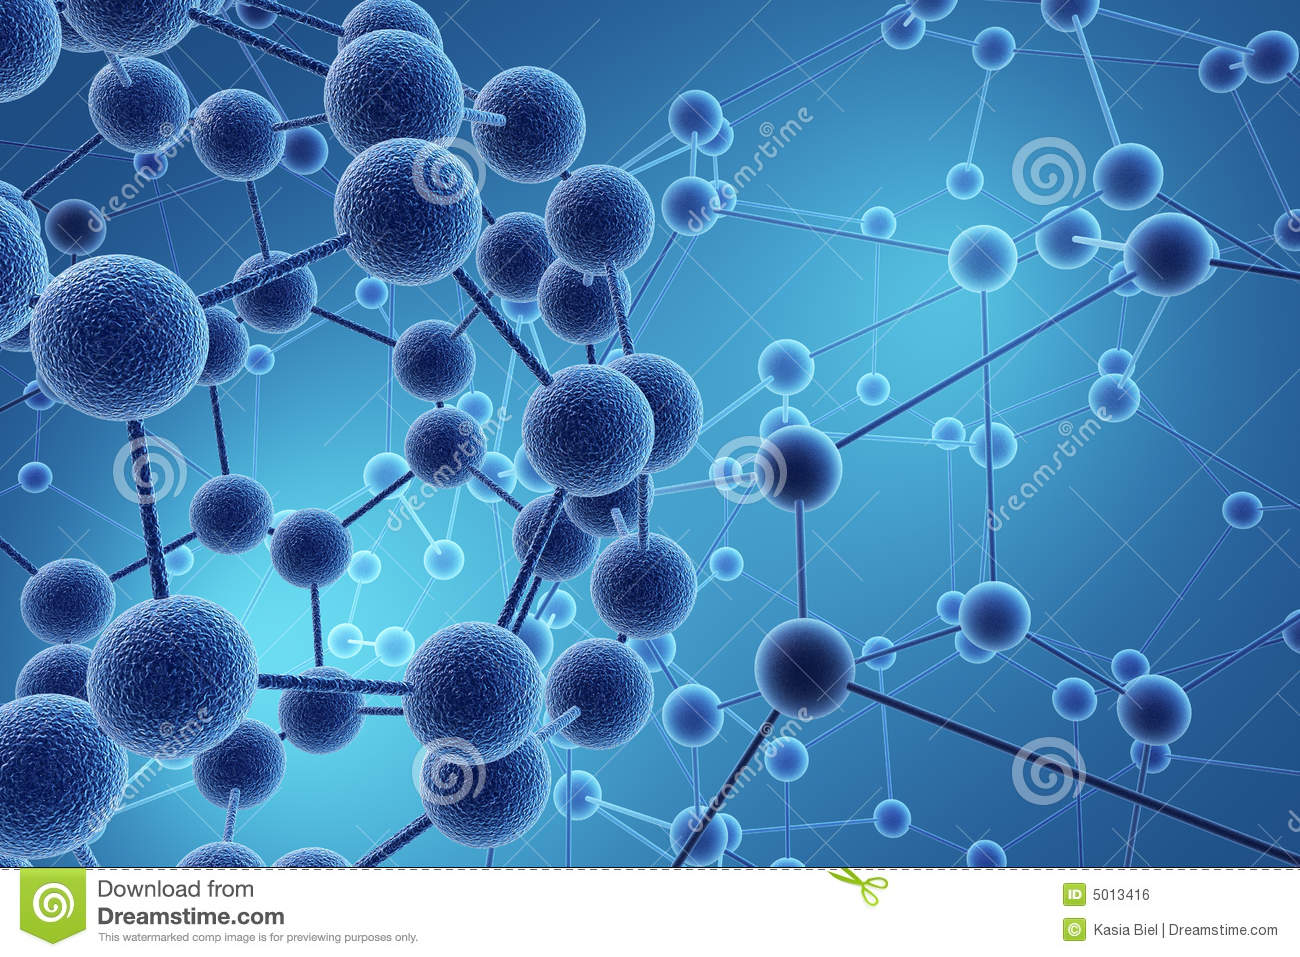 Neural Network Royalty Free Stock Image - Image: 5013416